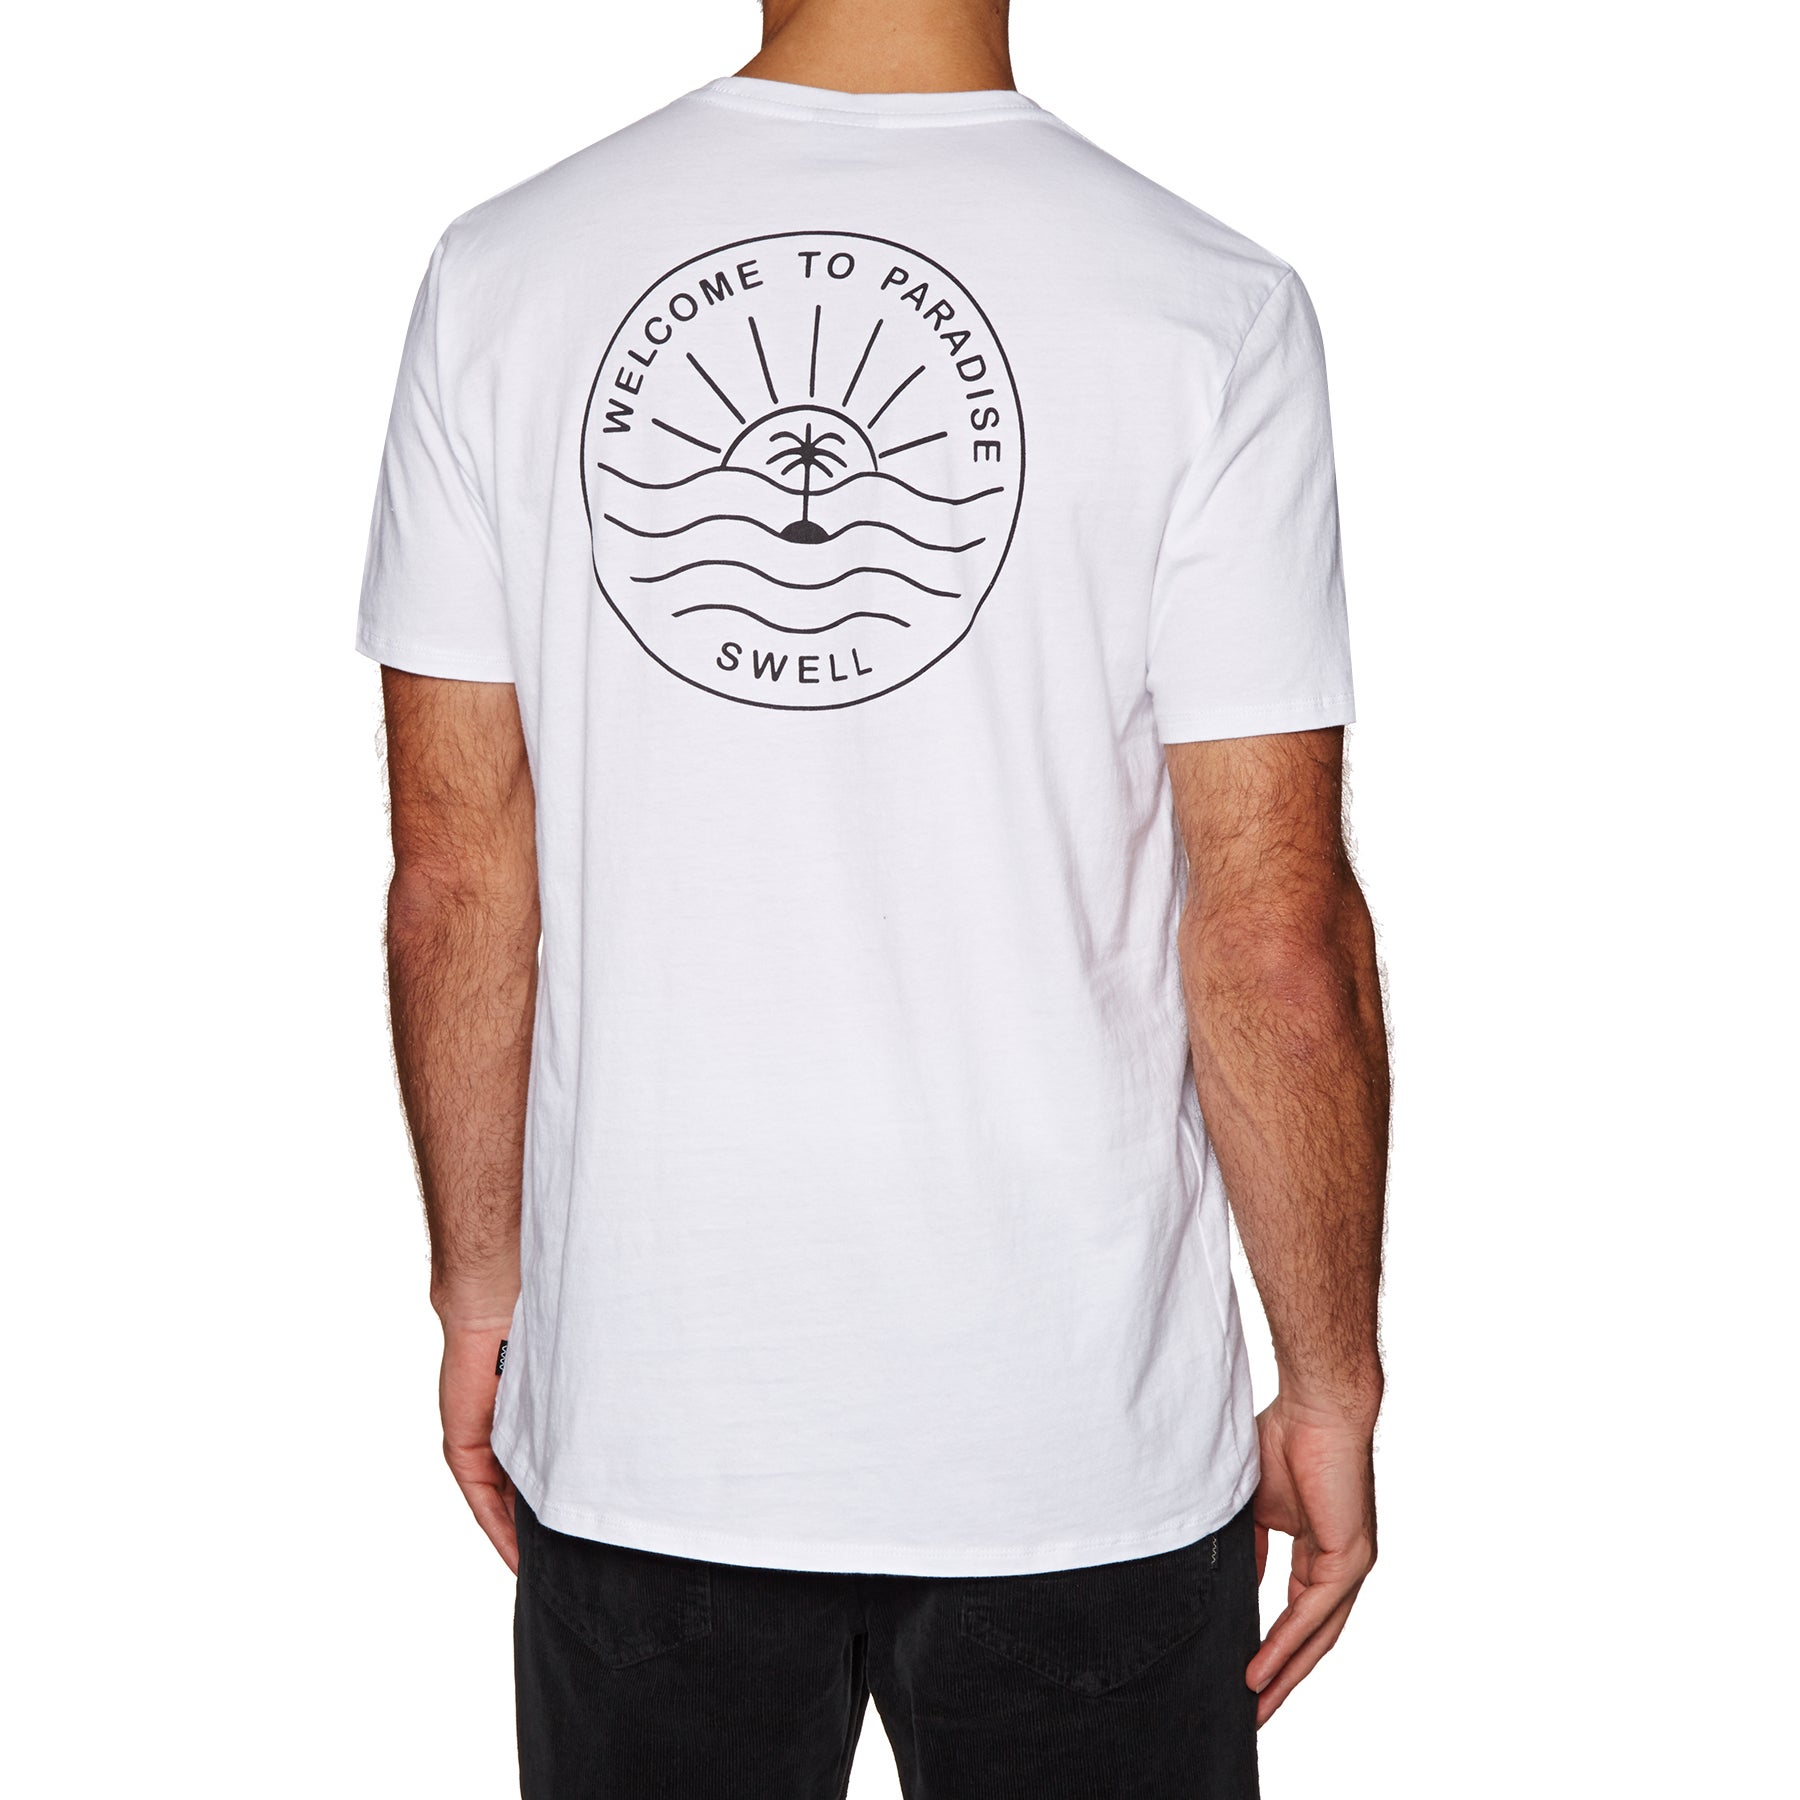 SWELL Jetsetter Short Sleeve T-Shirt